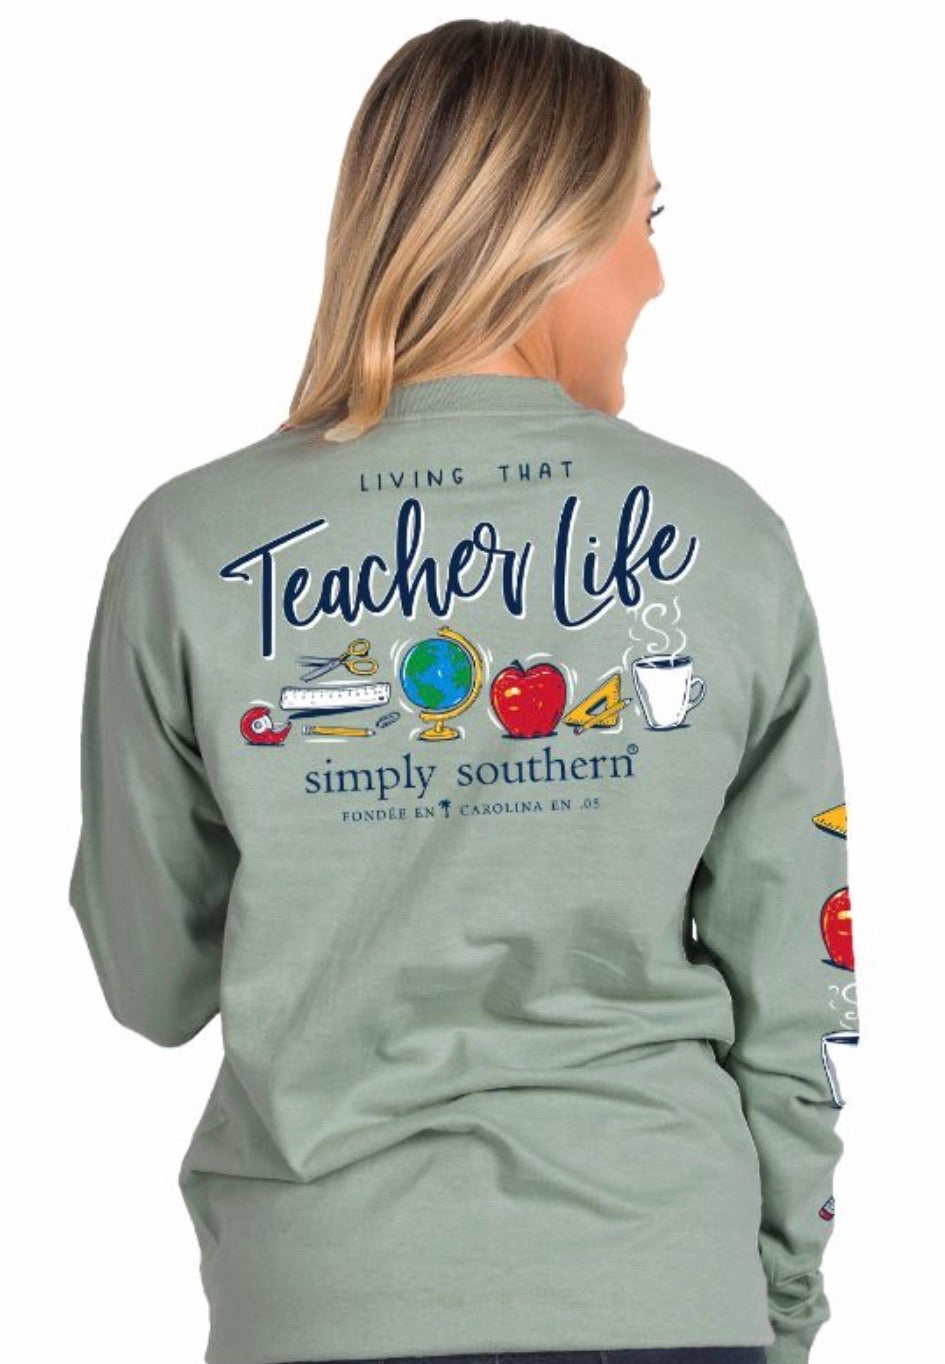 Simply Southern ~ Living that Teacher Life